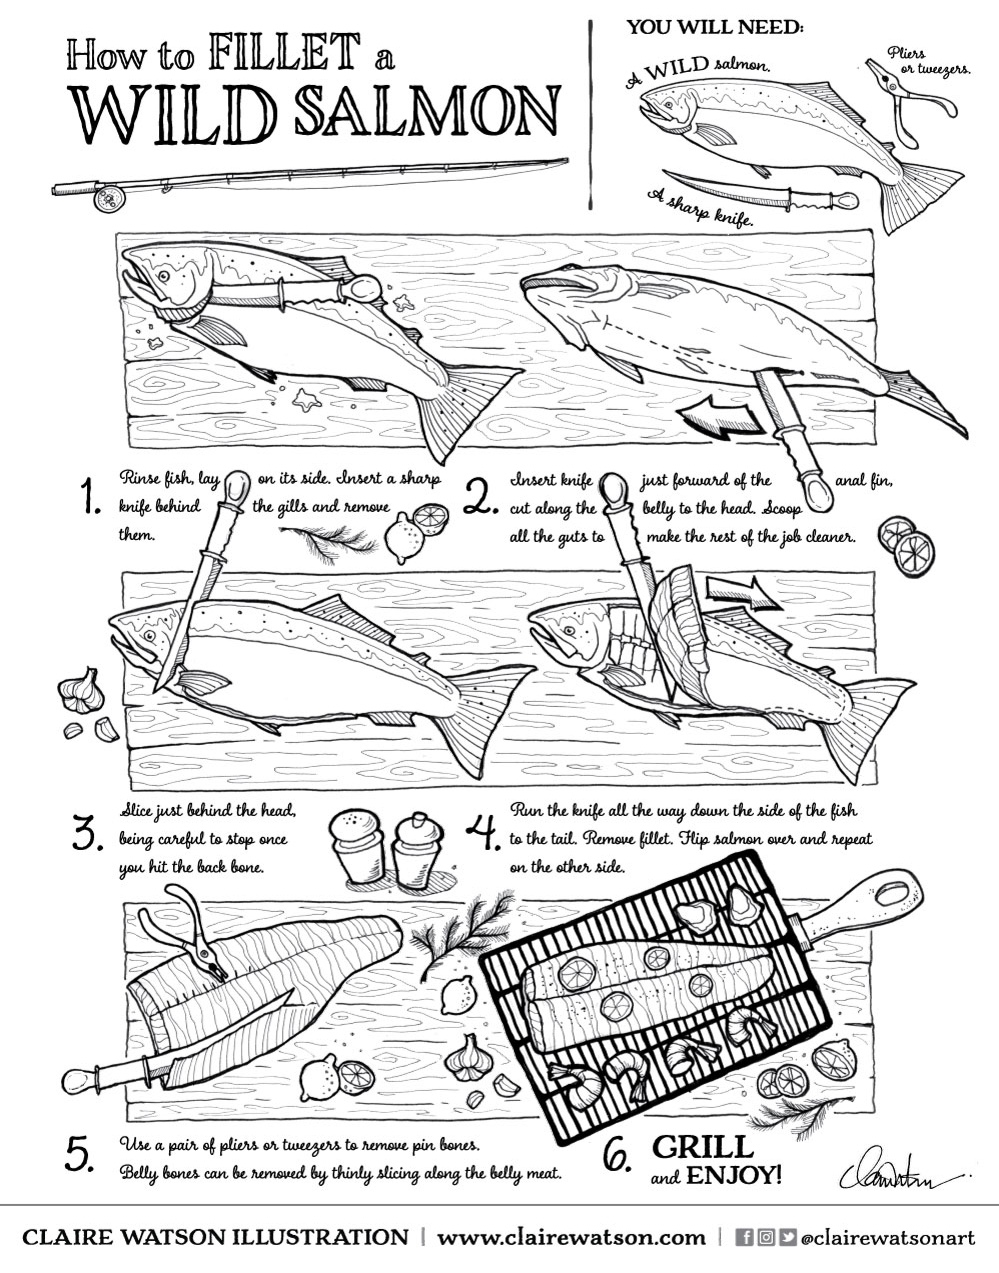 how-to-fillet-wild-salmon-claire-watson-colouring-page.jpg